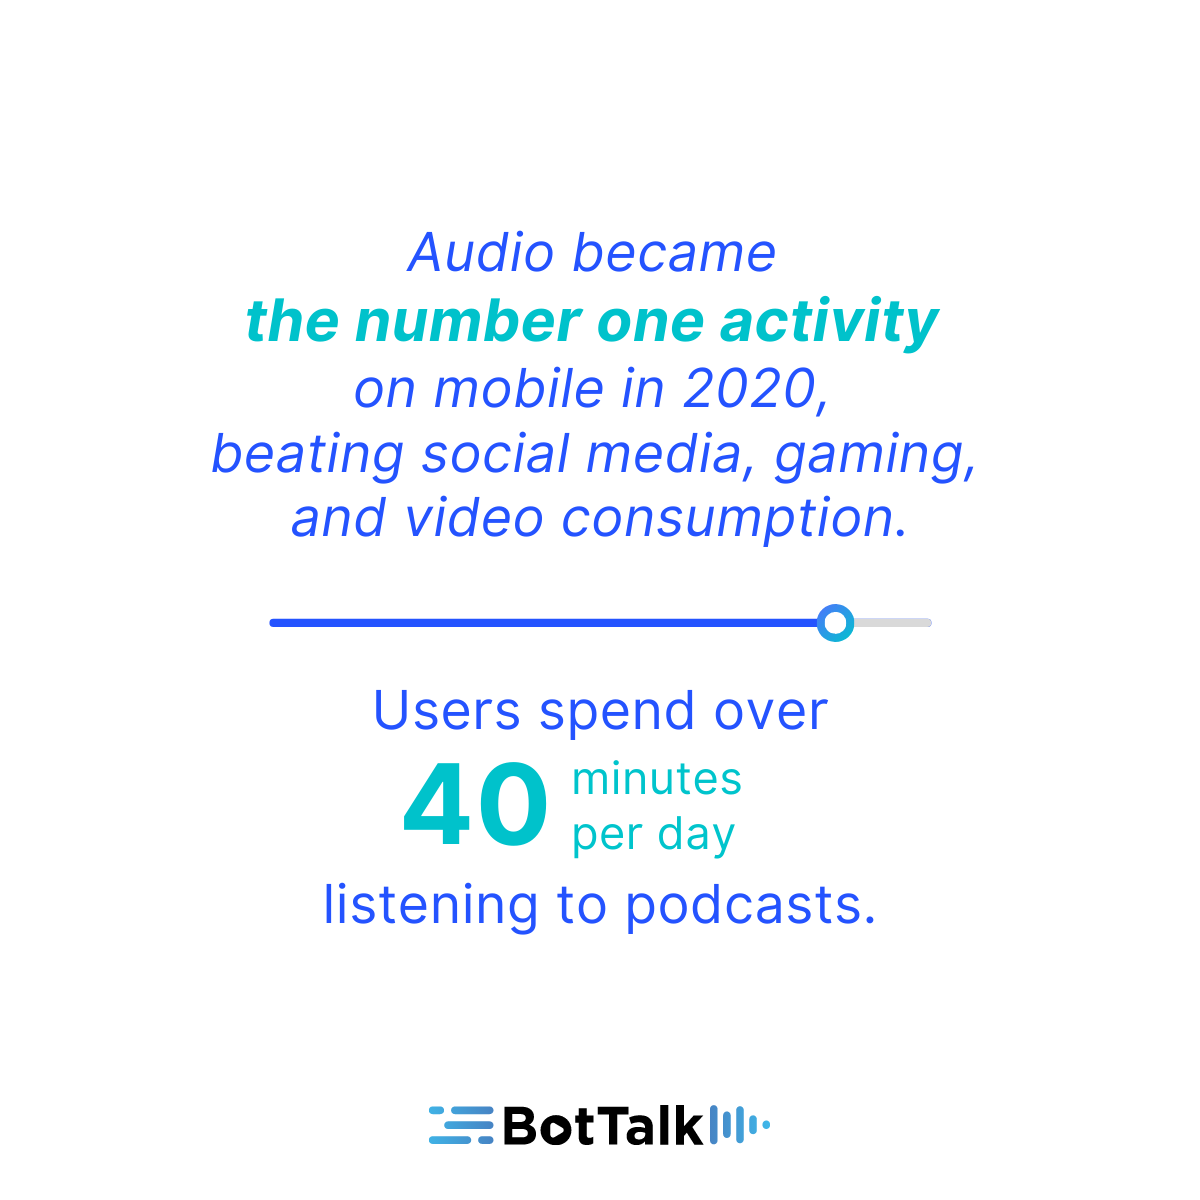 Users spend over 40 minutes per day listening to podcast. Audio is the activity number one on mobile.